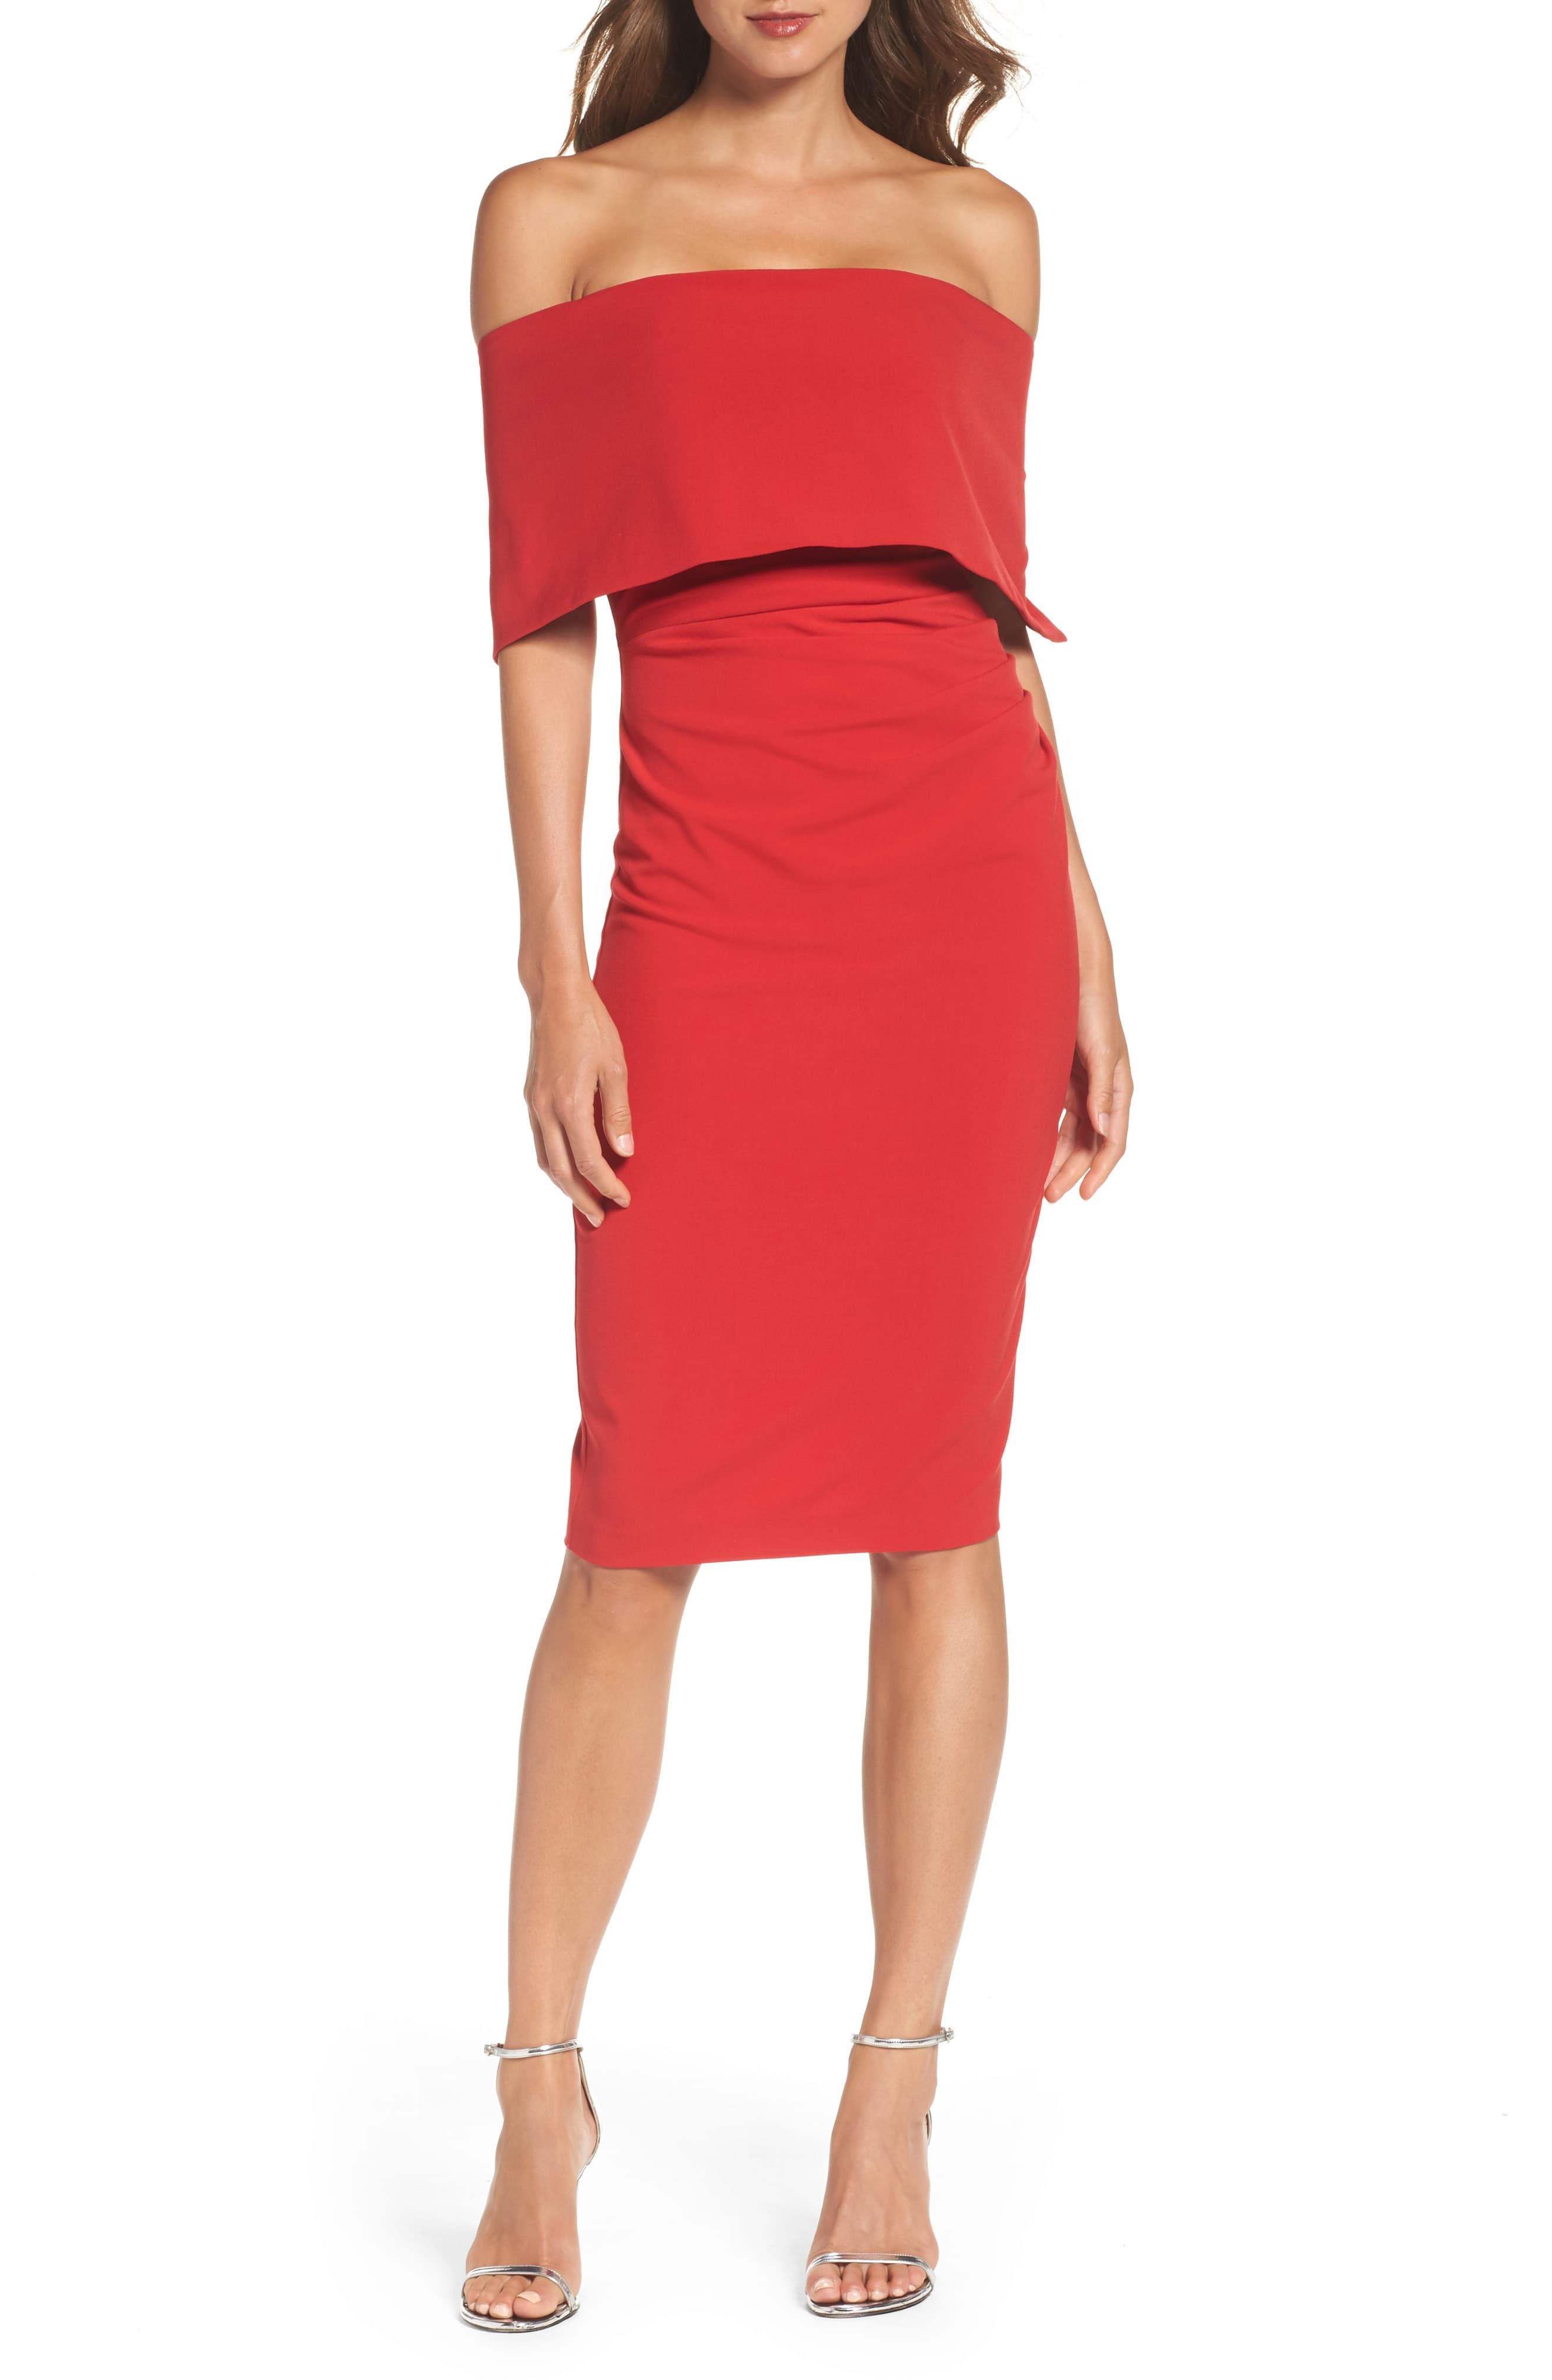 Women S Vince Camuto Popover Midi Dress Size 12 Red Dresses To Wear To A Wedding Red Cocktail Dress Vince Camuto Dress [ 4048 x 2640 Pixel ]